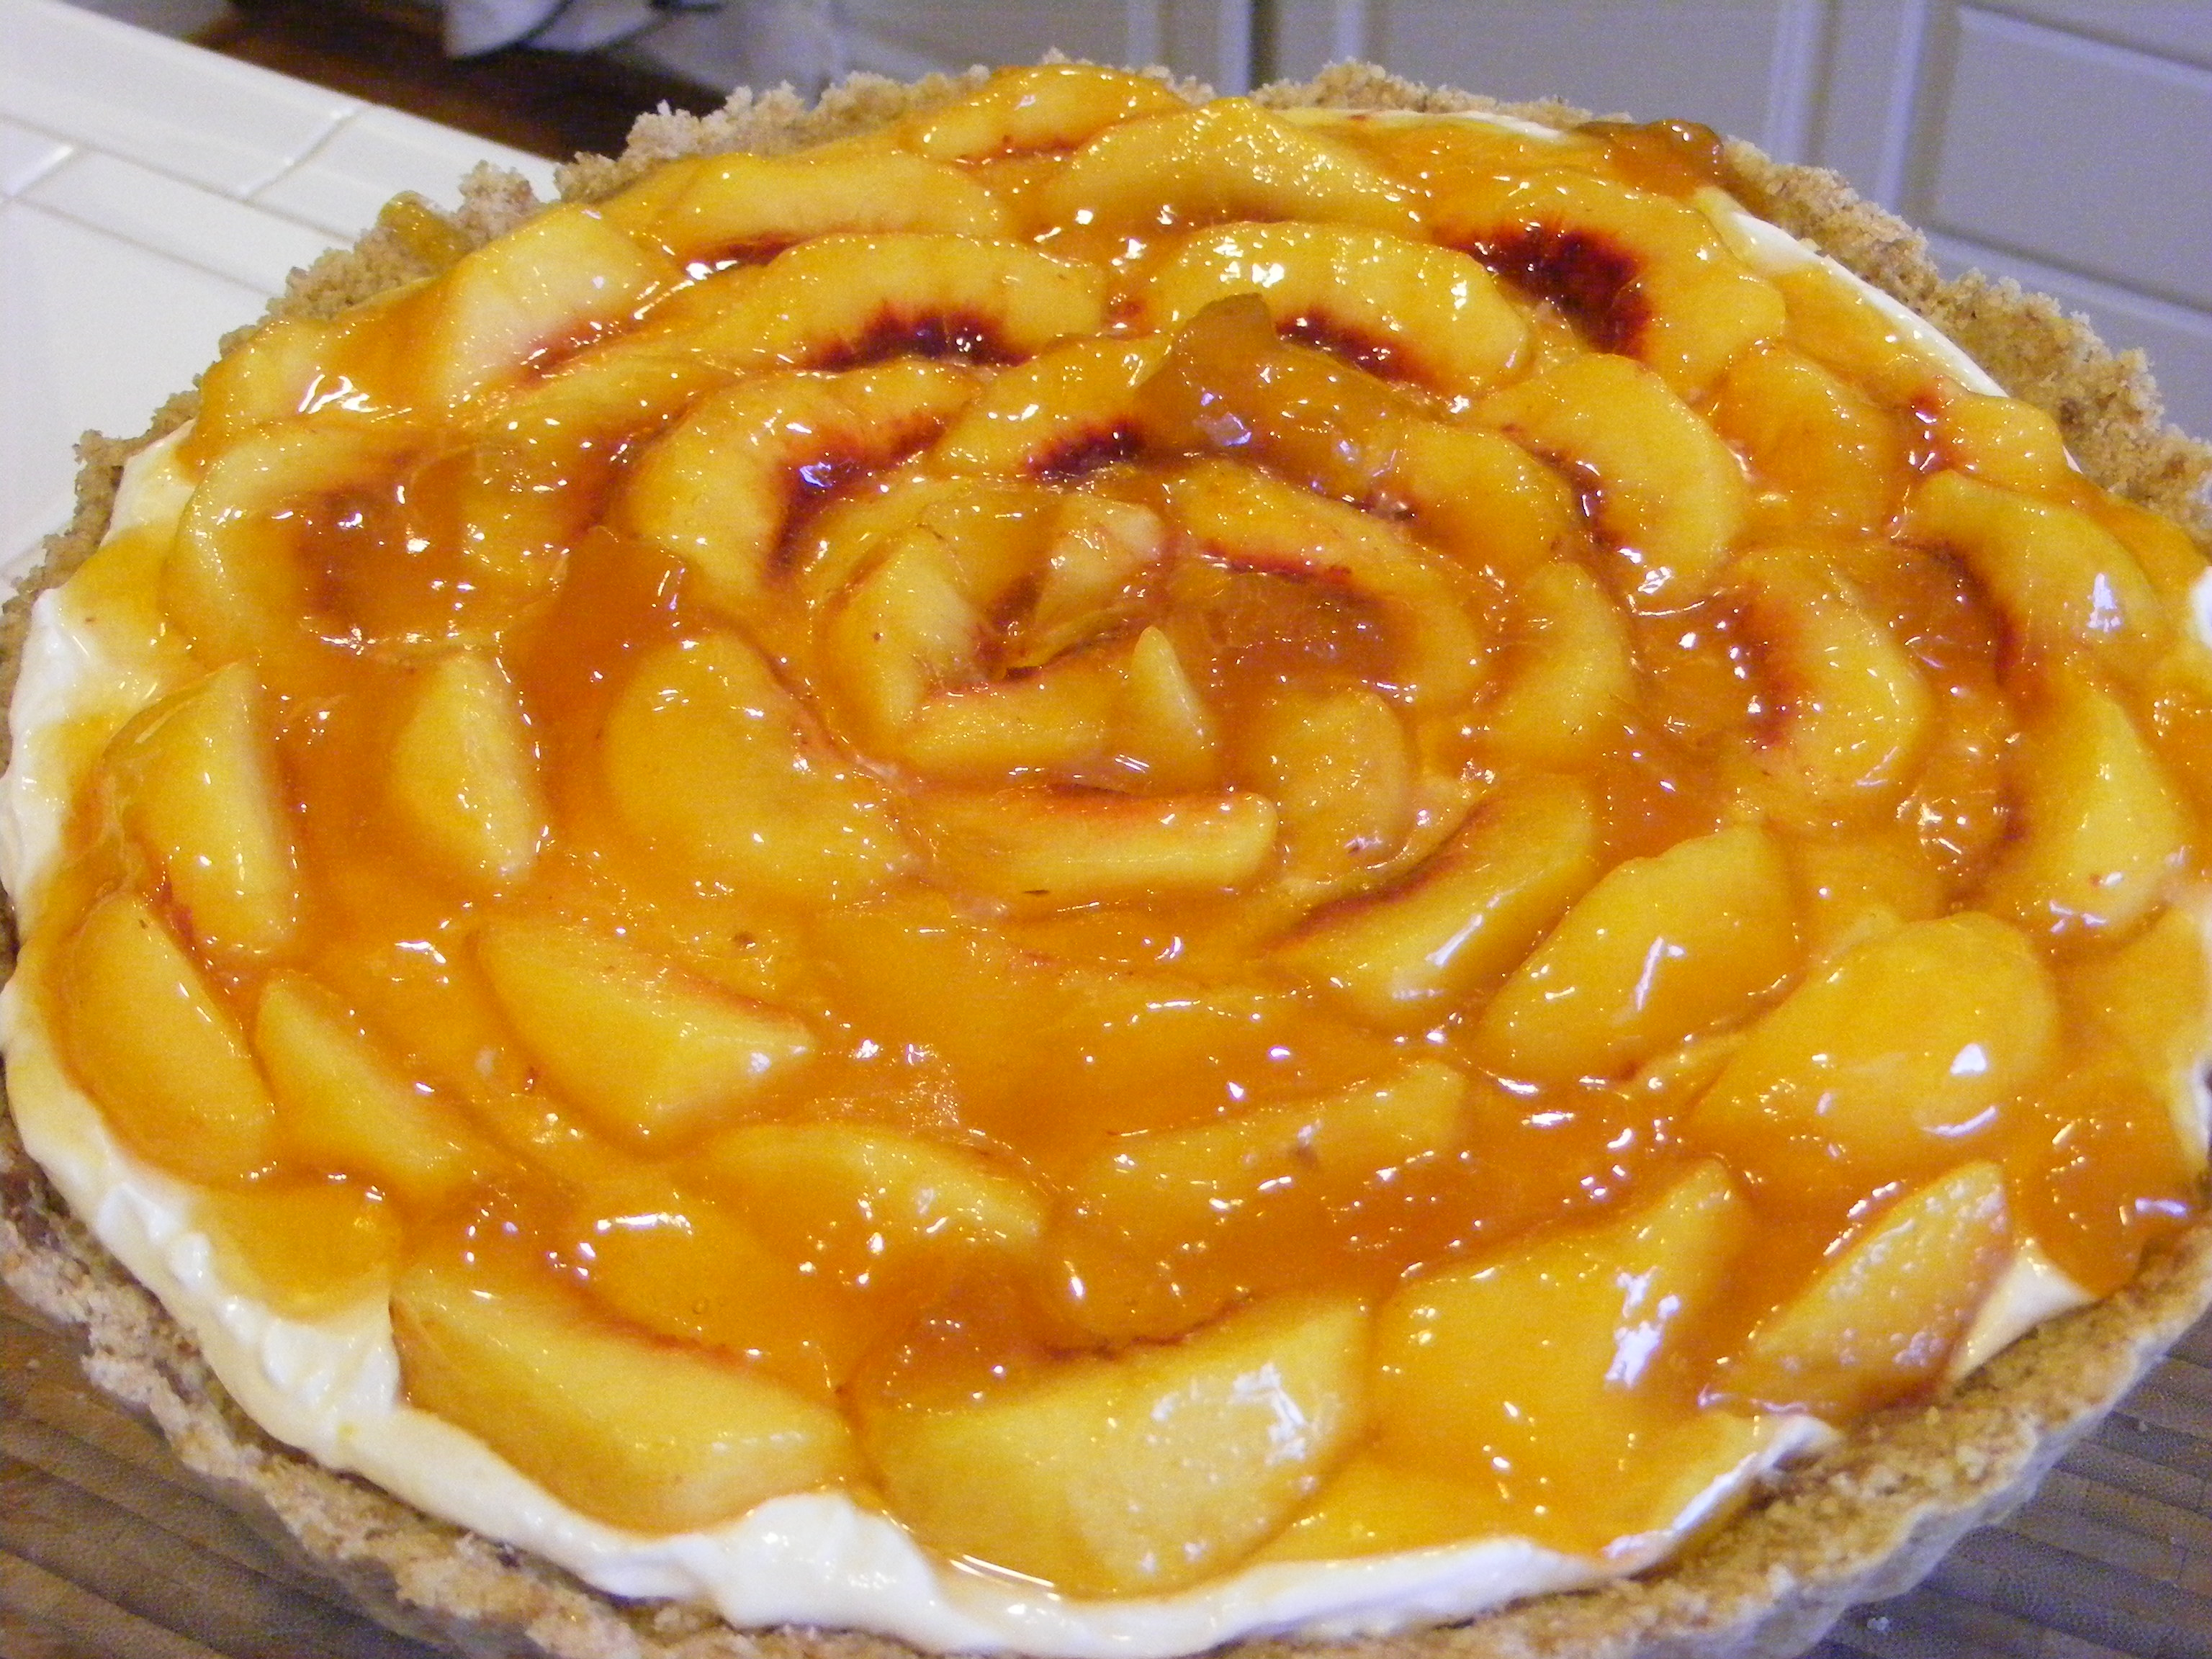 Creamy Fresh Peach Pie (or Tart) in a Nut Crust with Hazelnut Spread